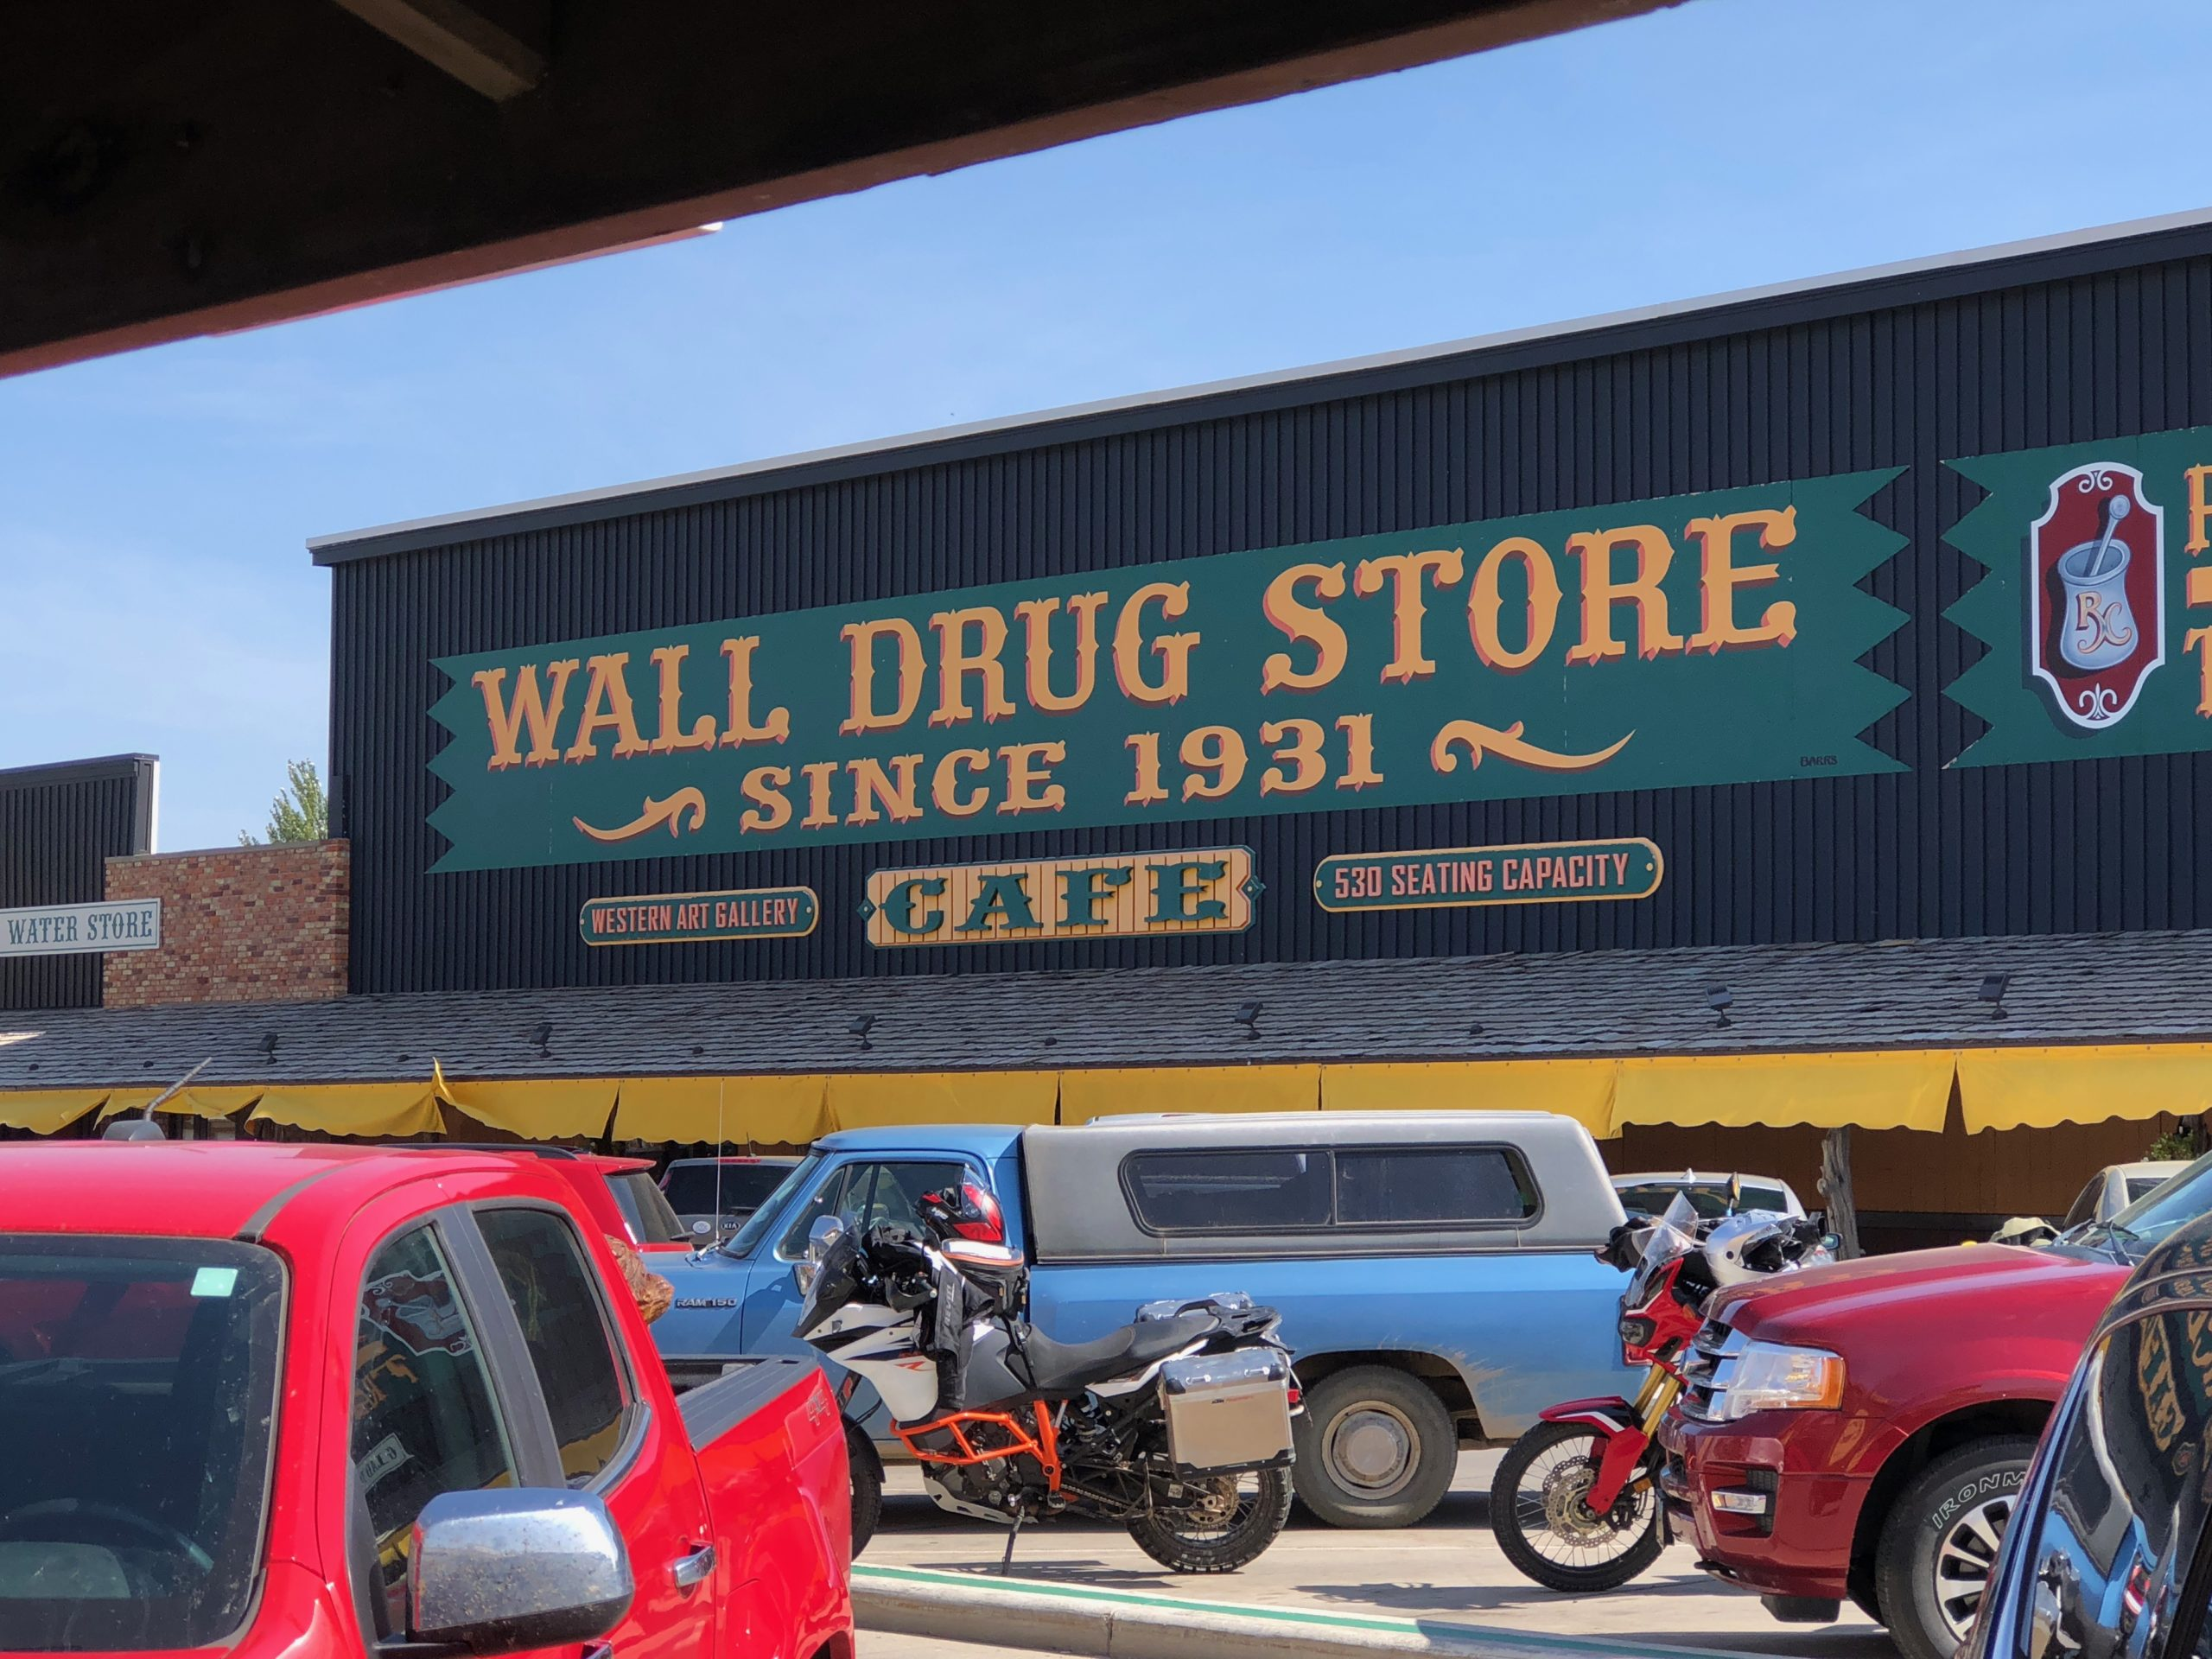 Worlds Largest Drug Store Wall SD